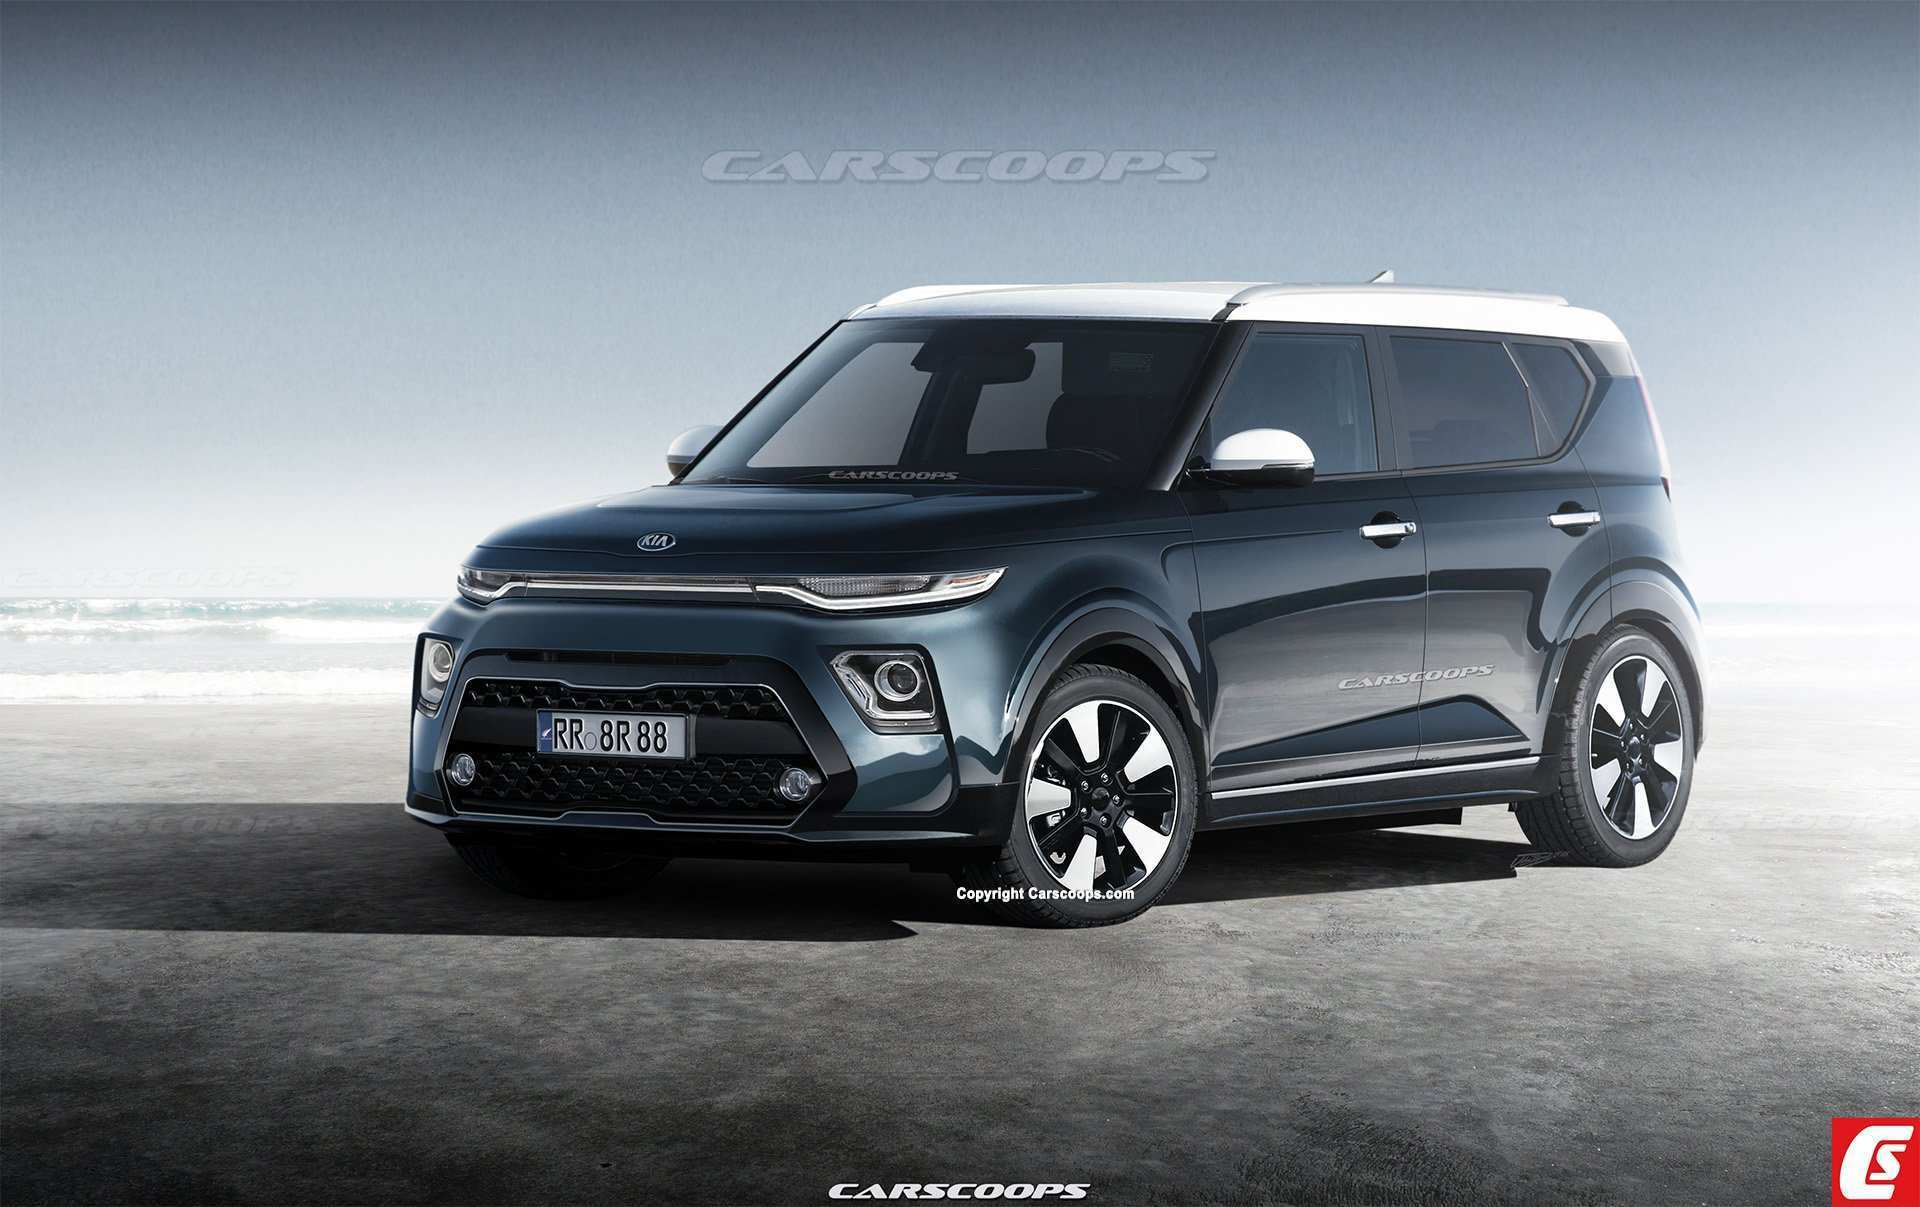 36 All New 2020 Kia Wallpaper with 2020 Kia